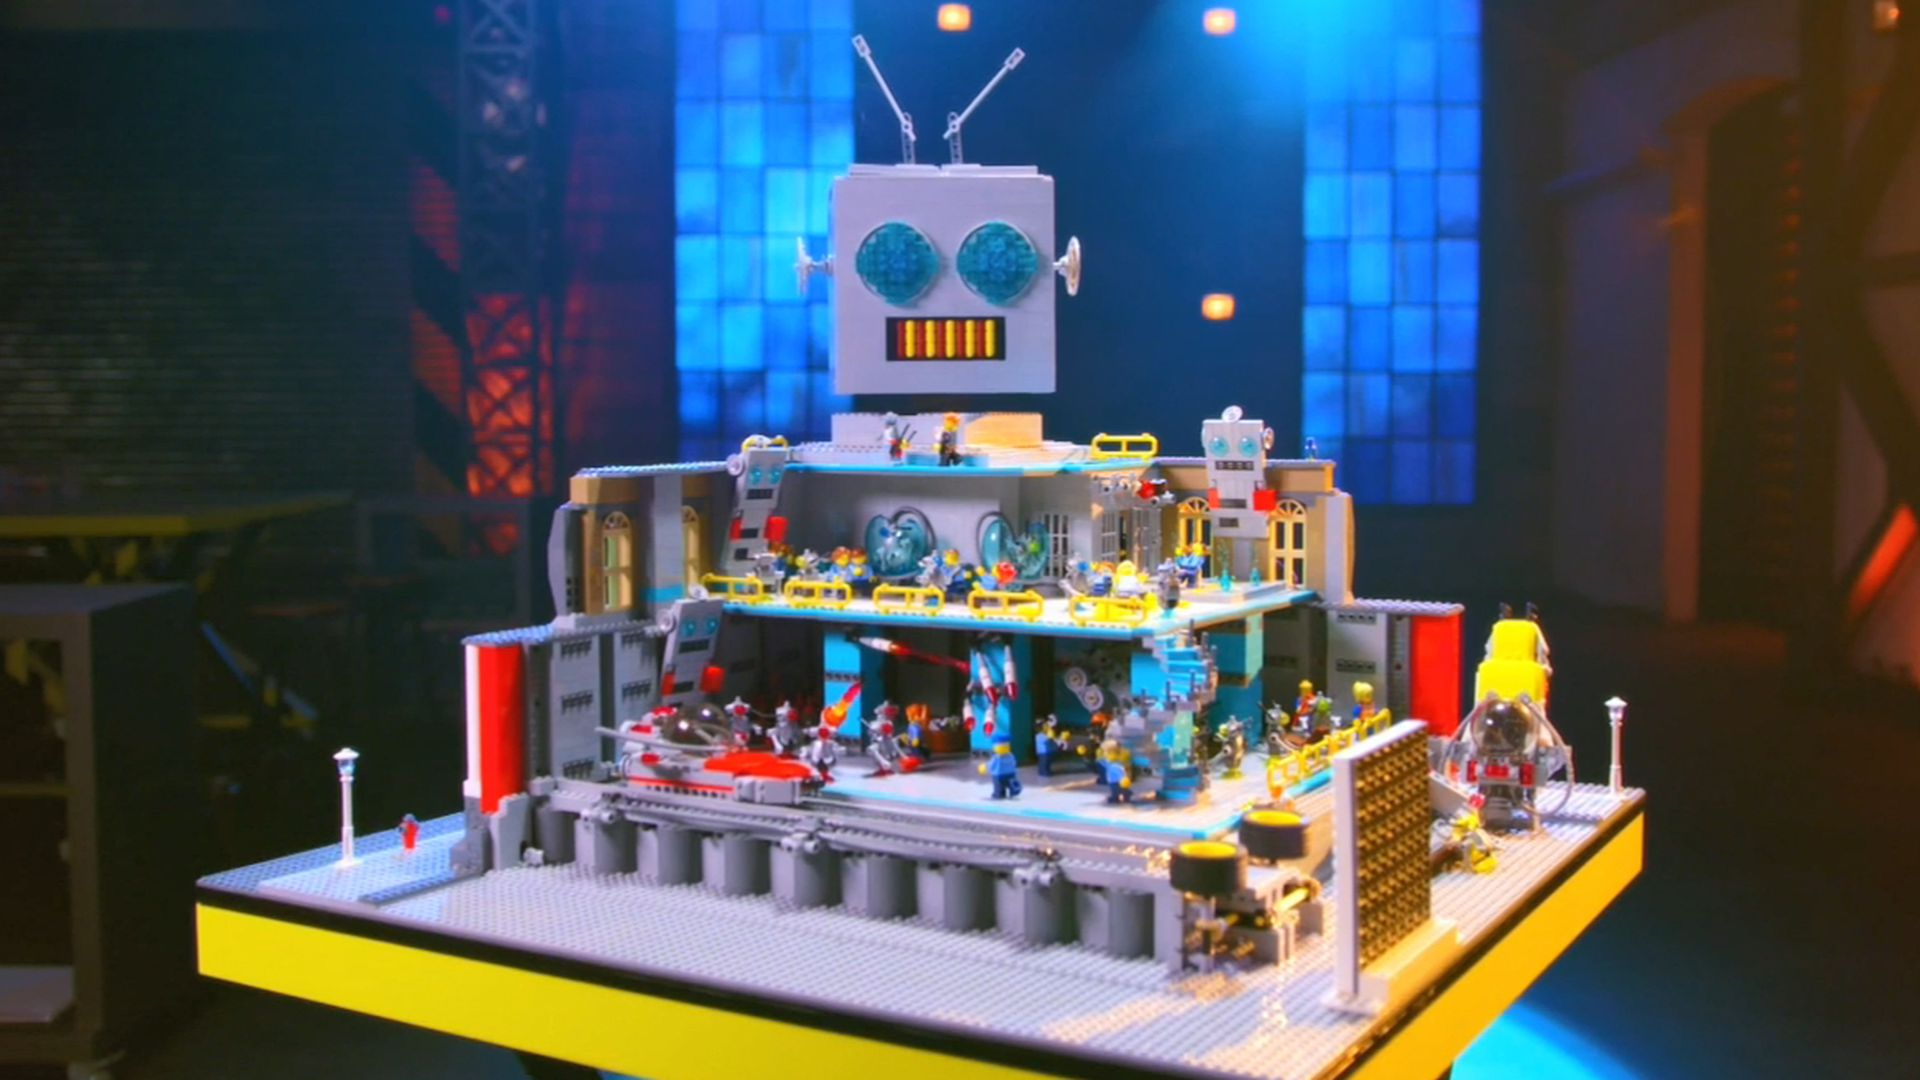 Watch LEGO Masters 2019, Stream Live or Watch Catch Up TV | 9Now